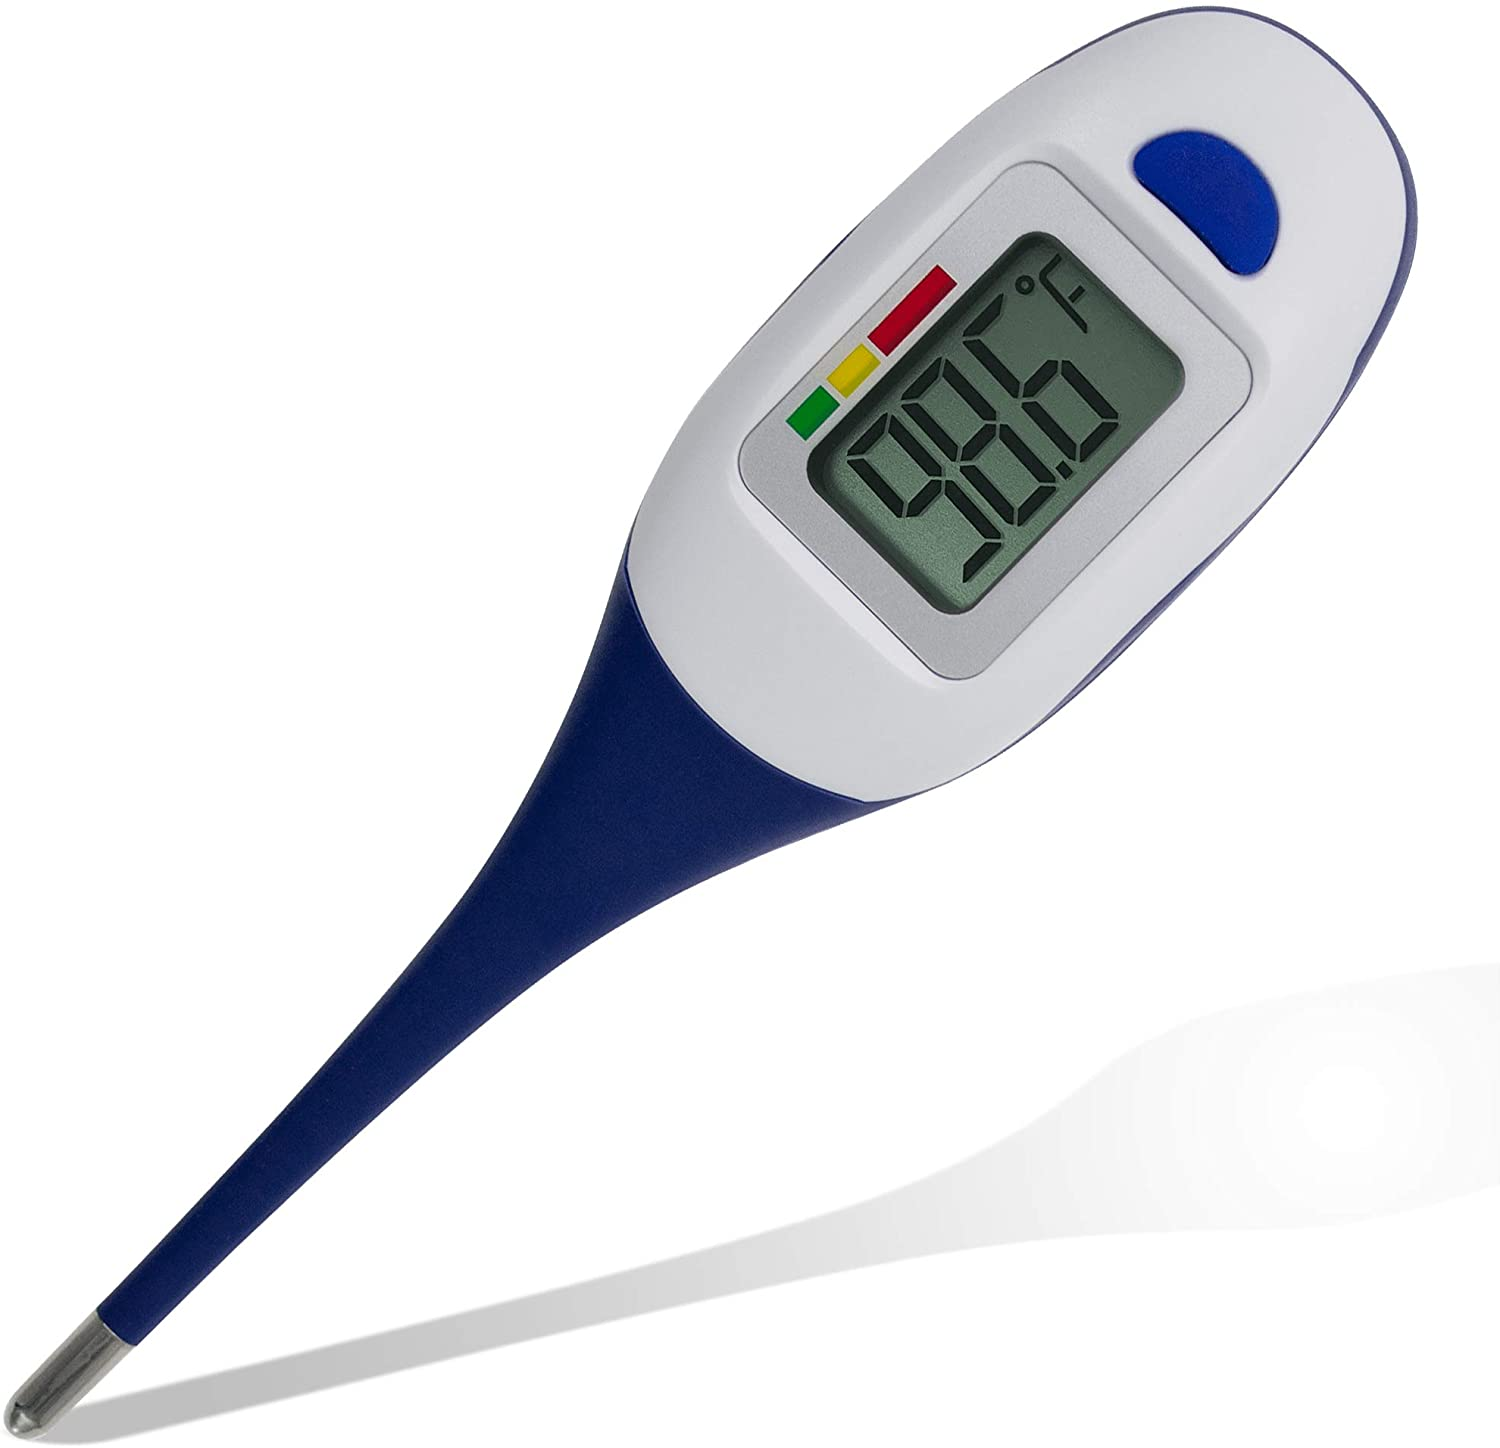 Apex Large Face LCD Fast Read Digital Thermometer for Adults and Children - Instant Read Thermometer for Fever Detection with Quick 5 Second Read Time : Health & Household